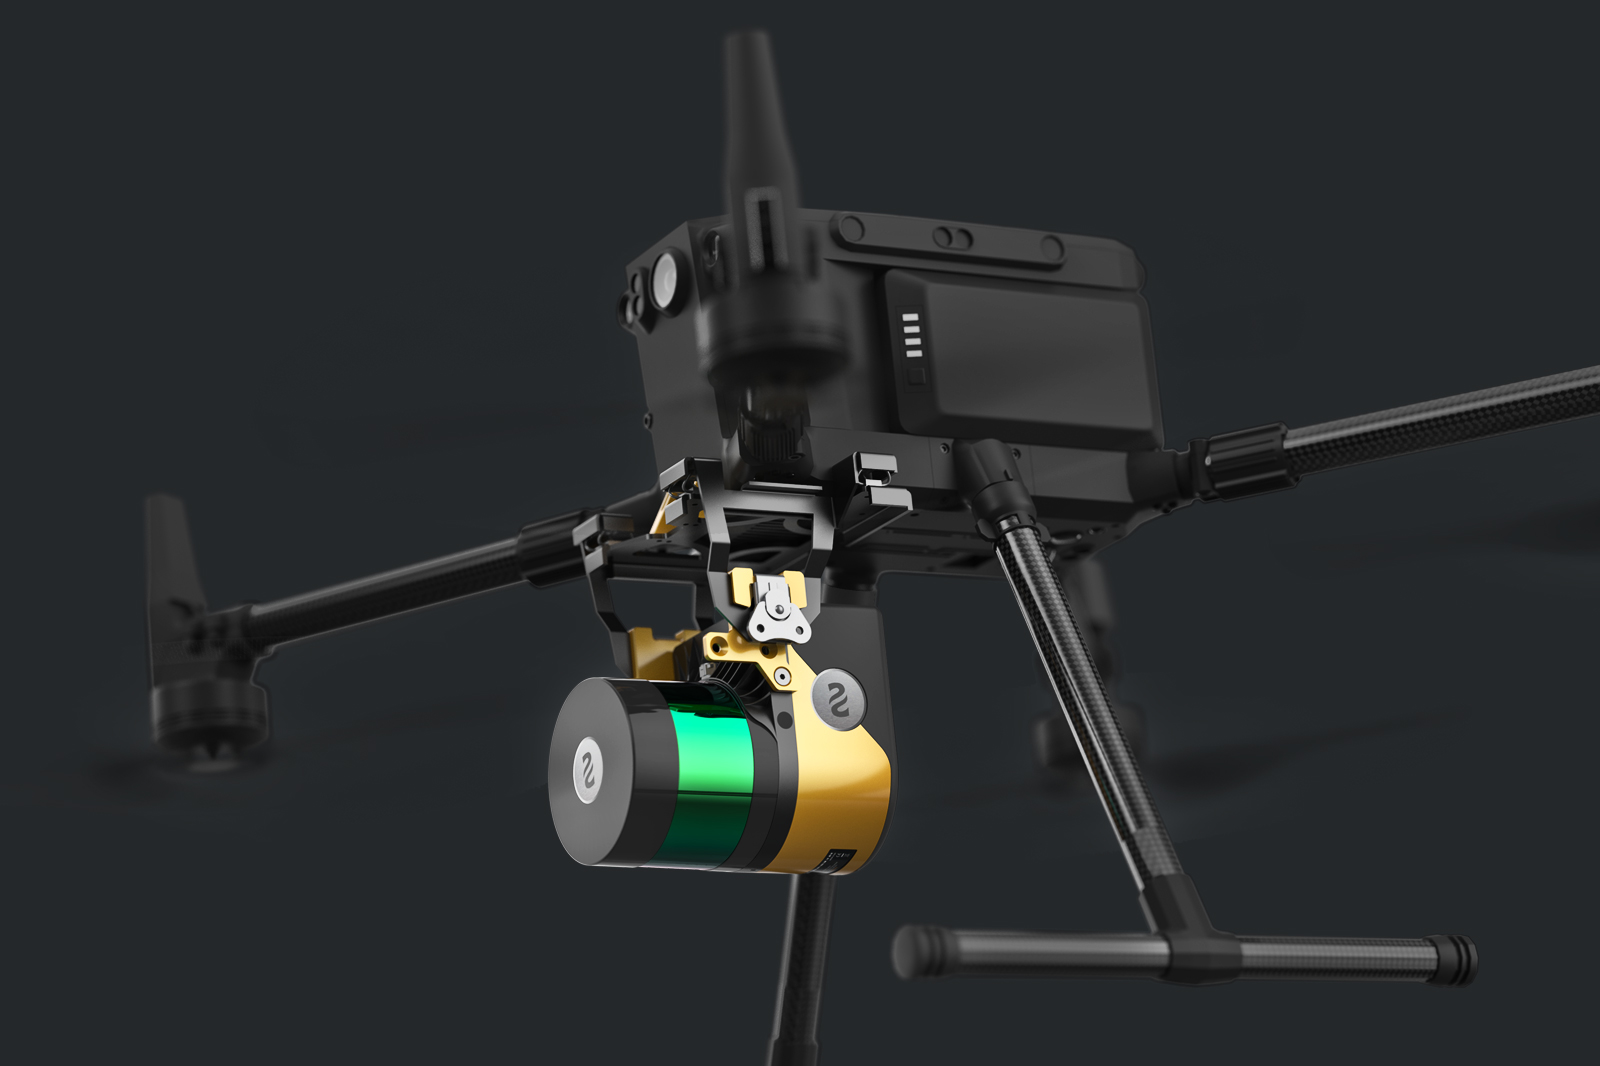 YellowScan Surveyor DJI m300にウルトラ